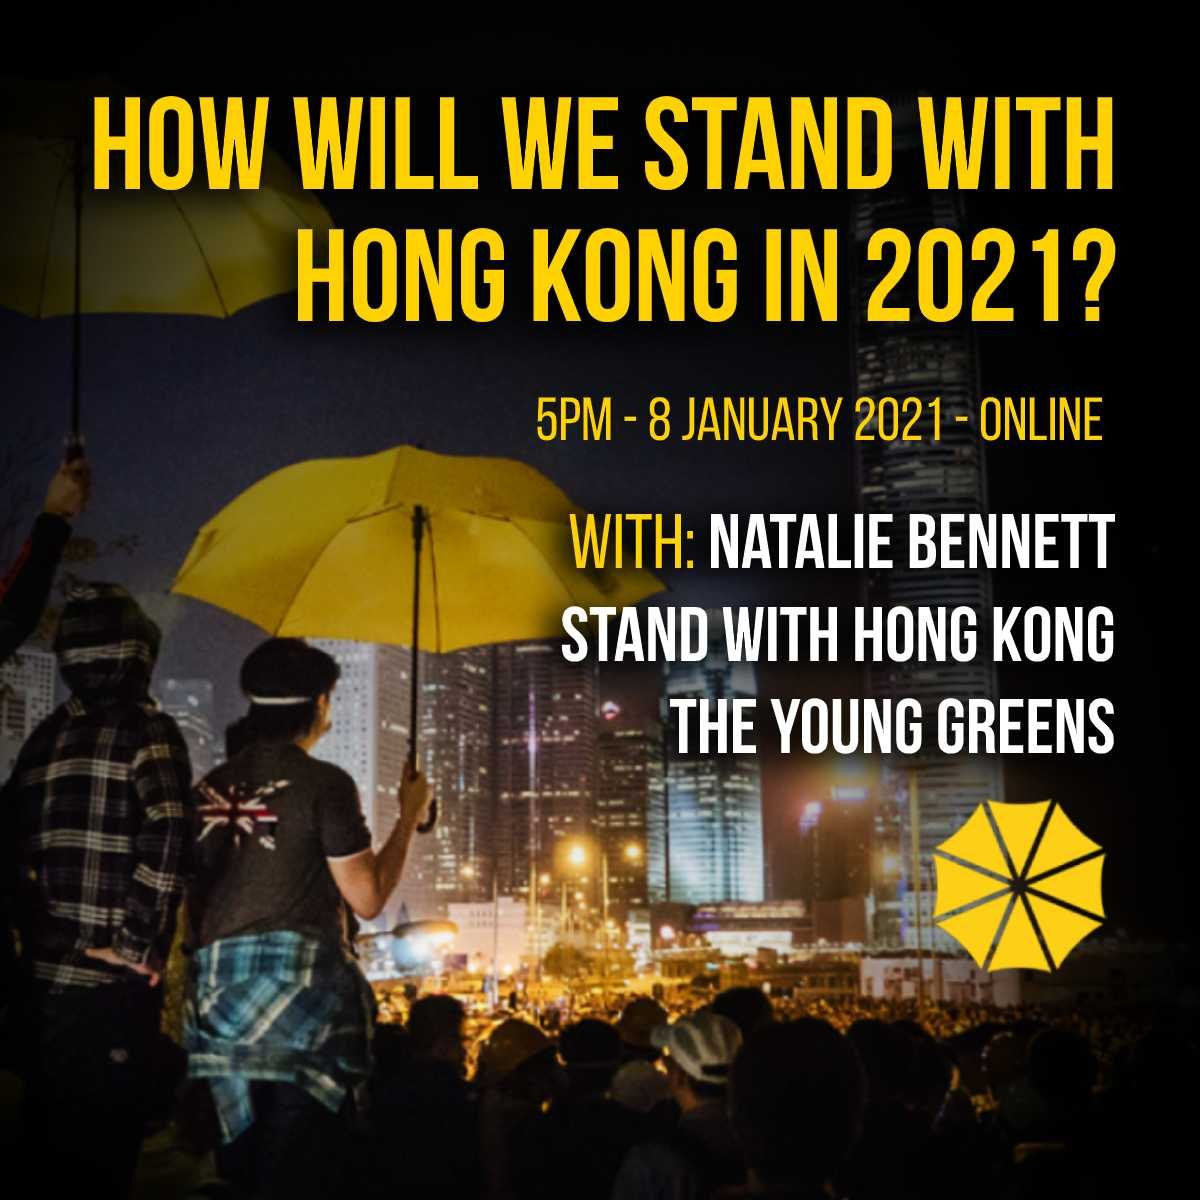 How will we stand with Hong Kong in 2021? Image of protestors in HK with yellow umbrellas